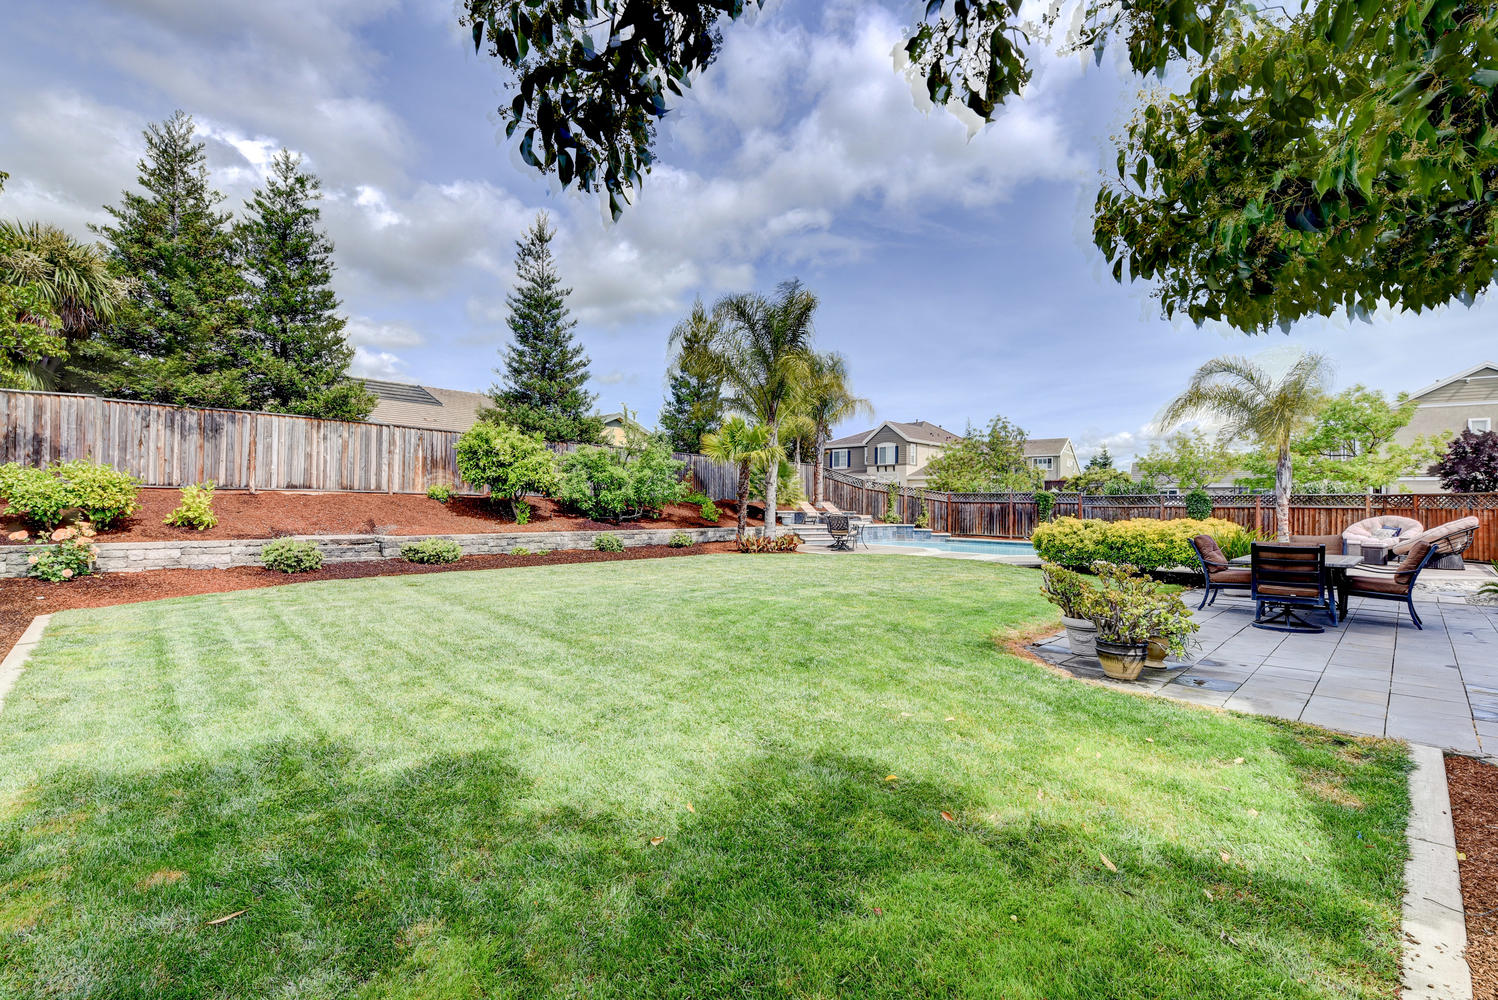 2896 Siena Rd Livermore CA-large-022-25-Back Yard-1498×1000-72dpi